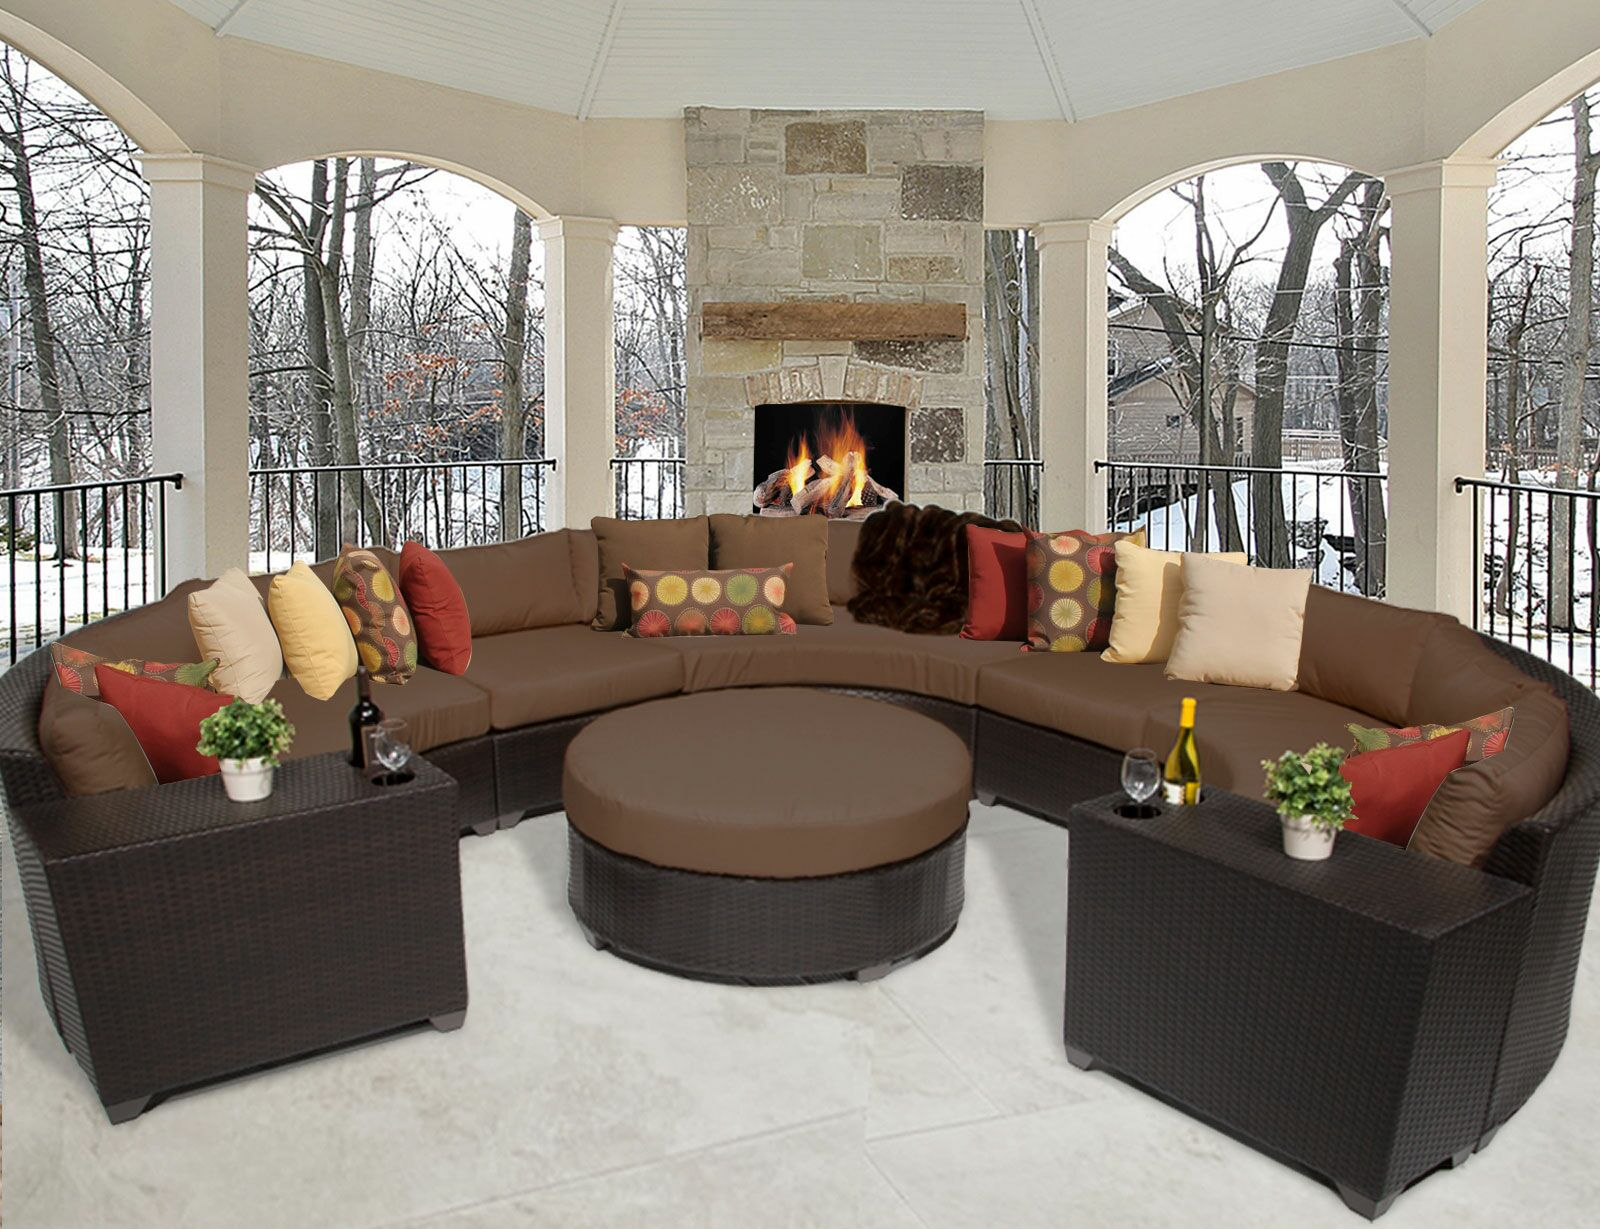 Barbados 8 Piece Rattan Sectional Set with Cushions Color: Cocoa